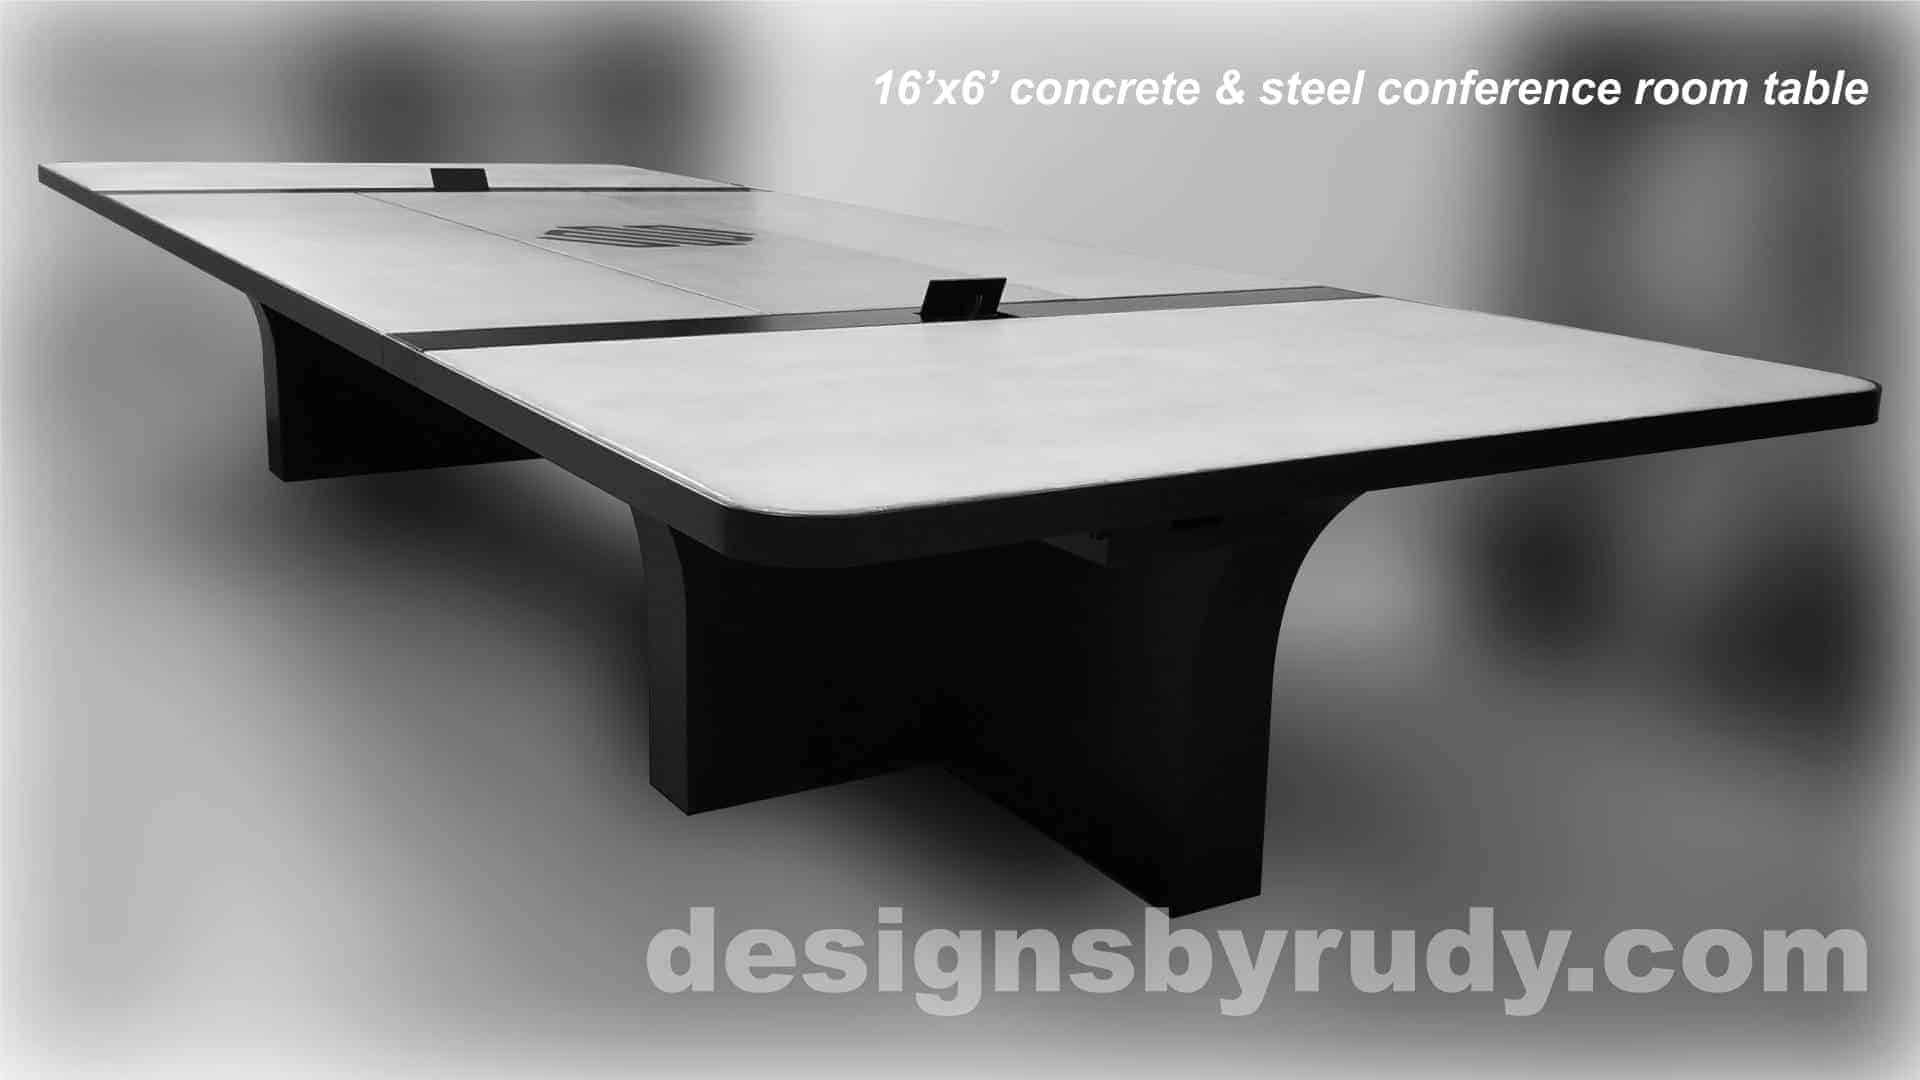 1 Concrete and Steel Conference Room Table for Markforged finished right view Designs by Rudy